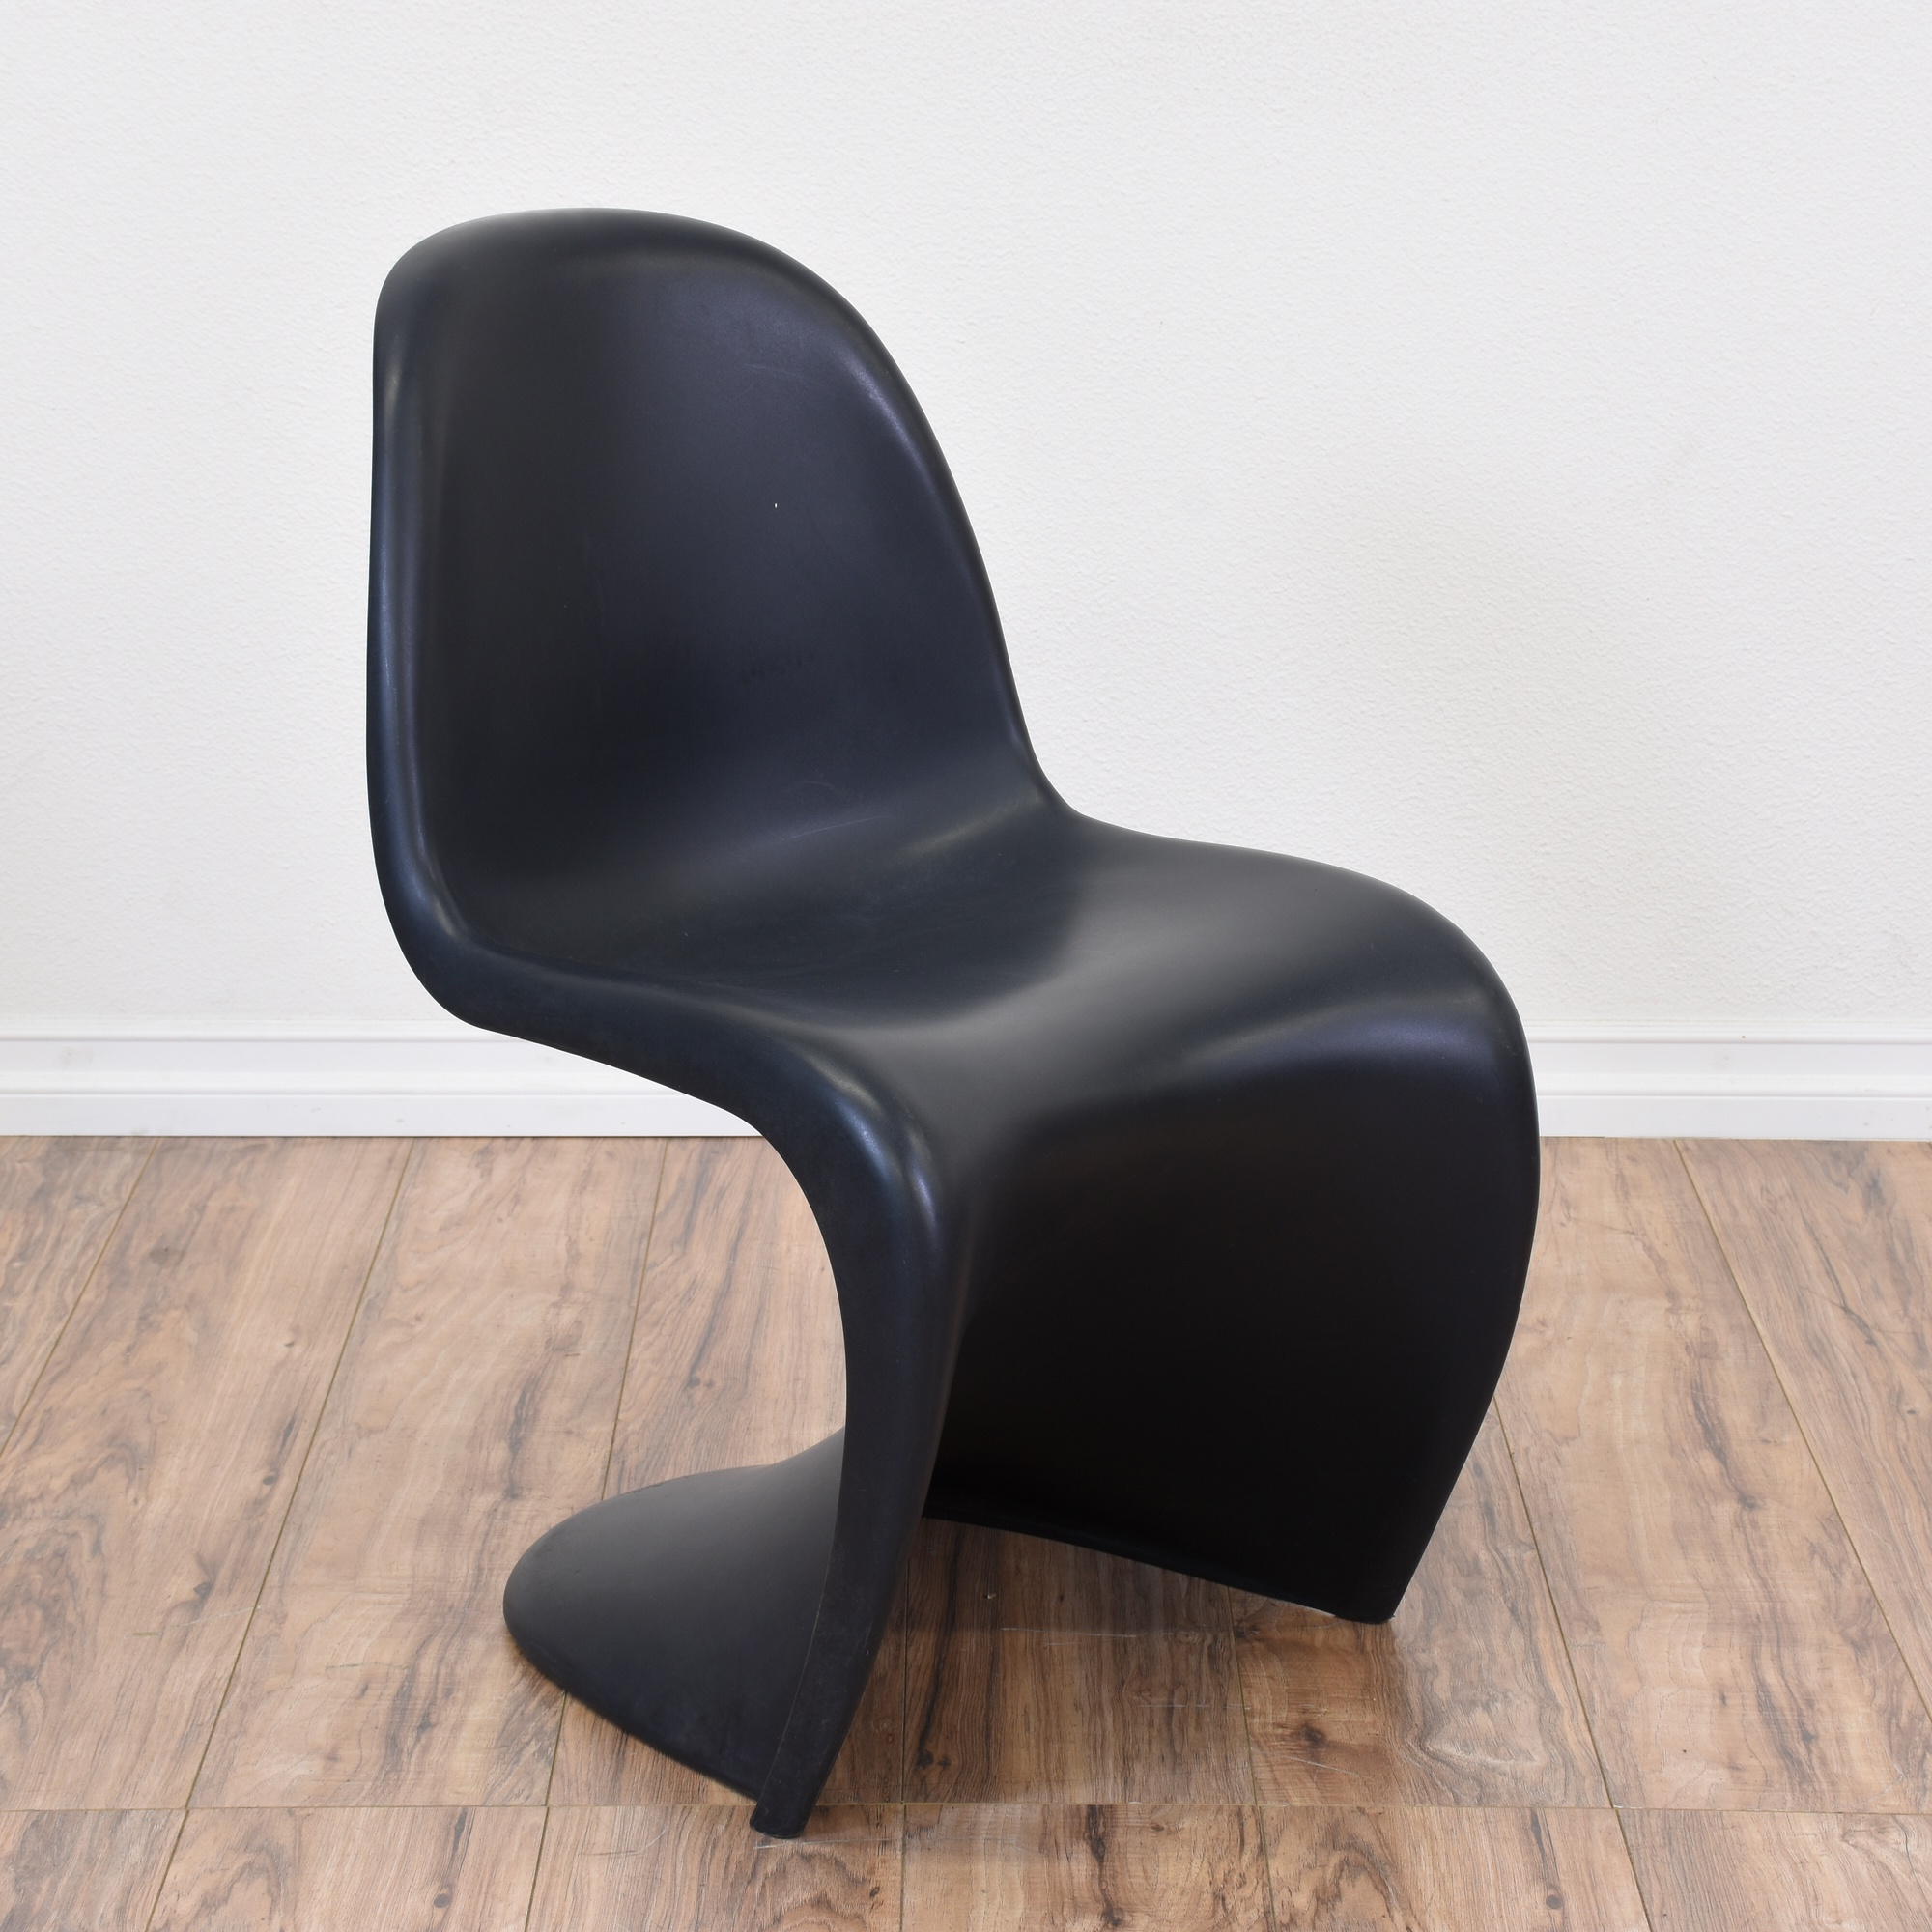 vitra panton chair in black loveseat vintage furniture. Black Bedroom Furniture Sets. Home Design Ideas